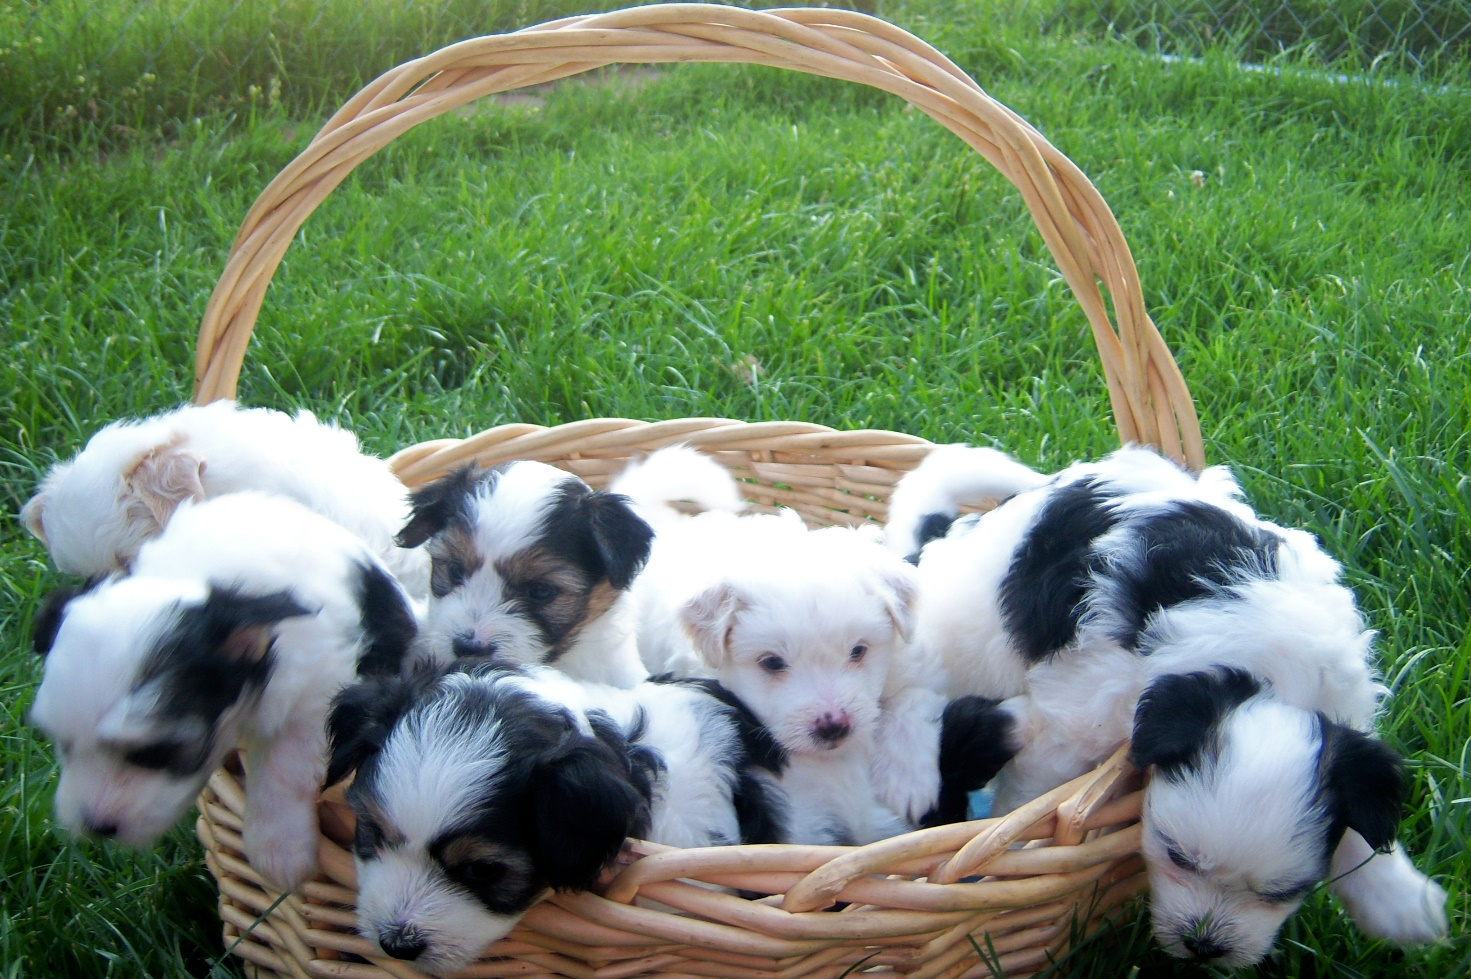 Coton de Tulear puppies in the basket